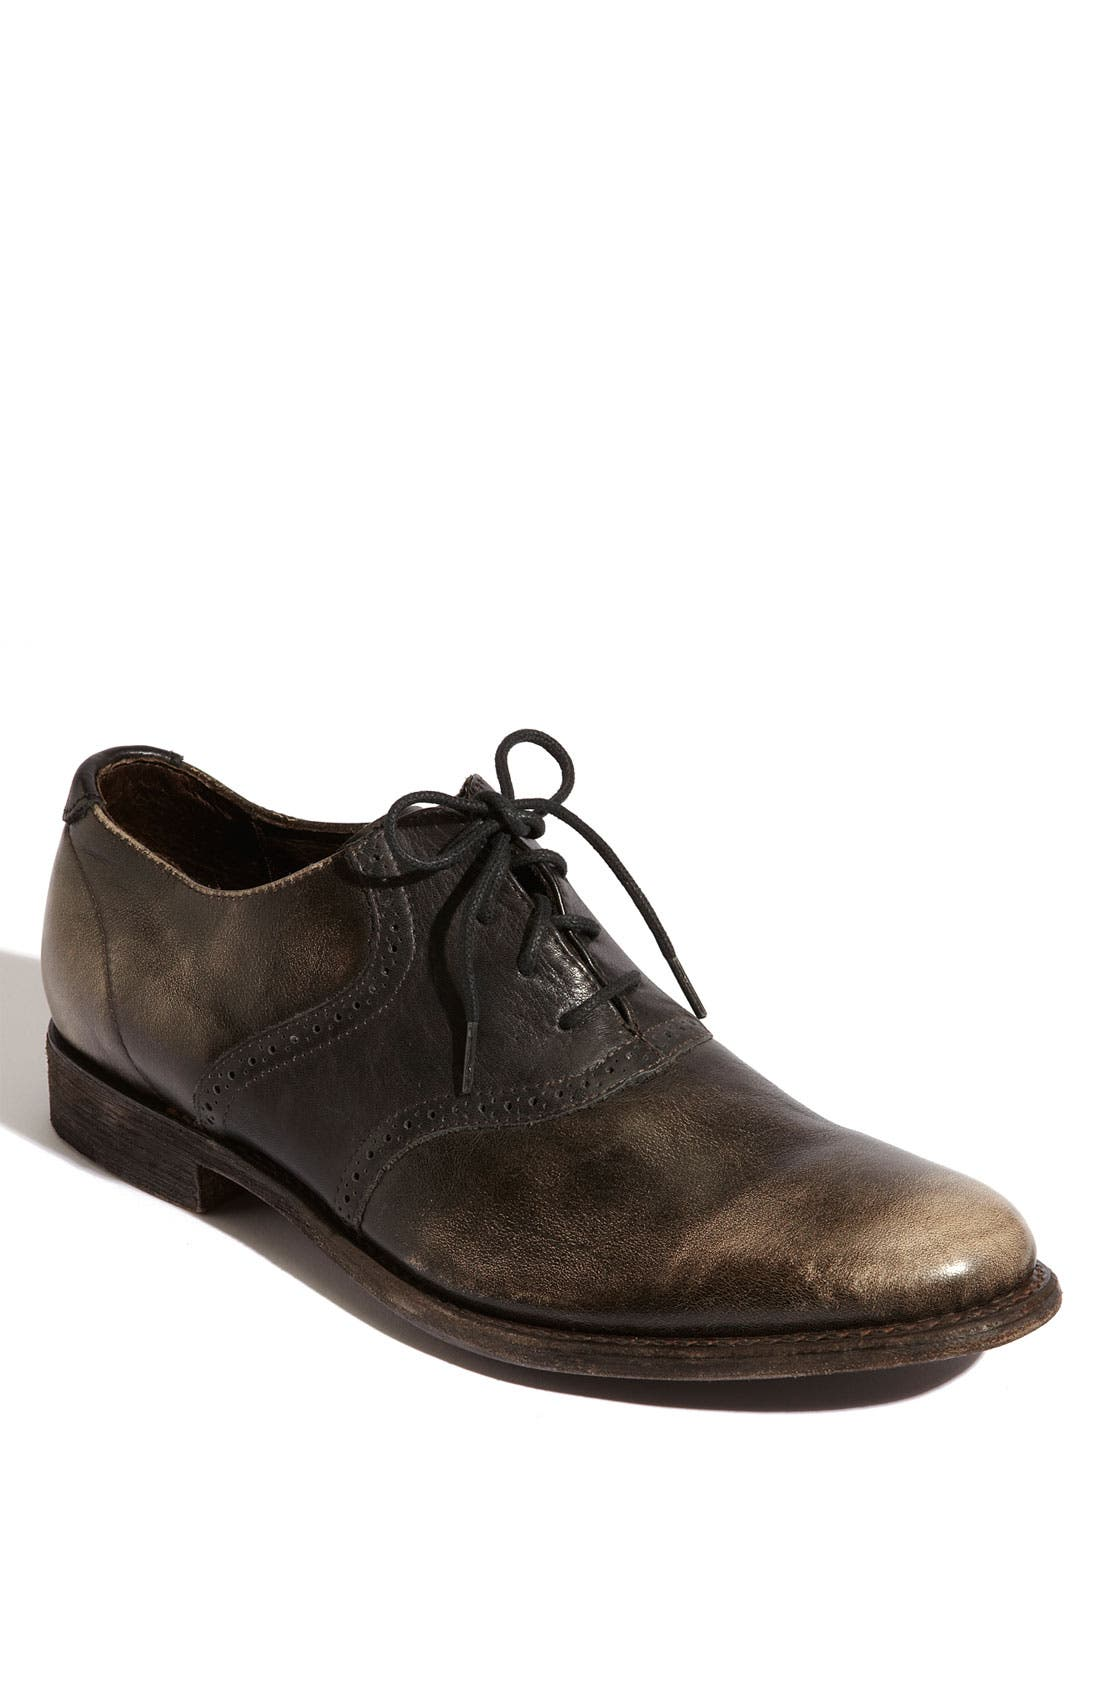 Alternate Image 1 Selected - J.D. Fisk 'Nikko' Saddle Shoe